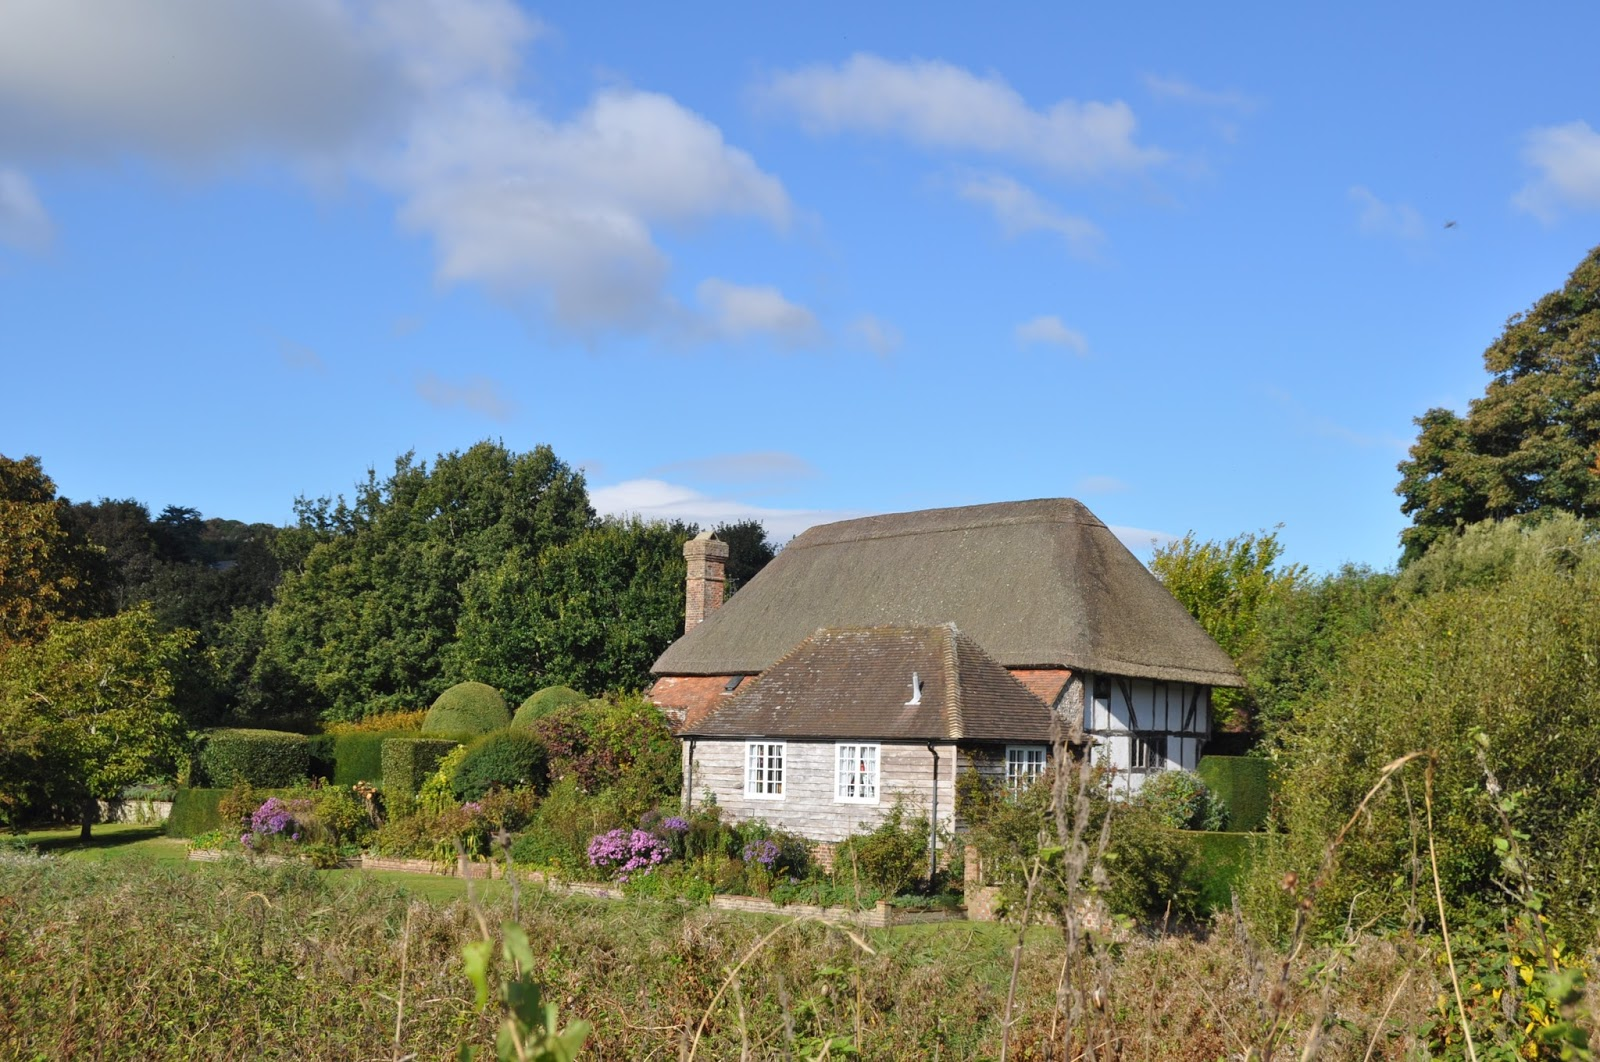 Days Out in Sussex - Alfriston and the Cuckmere Valley, photo by modern bric a brac